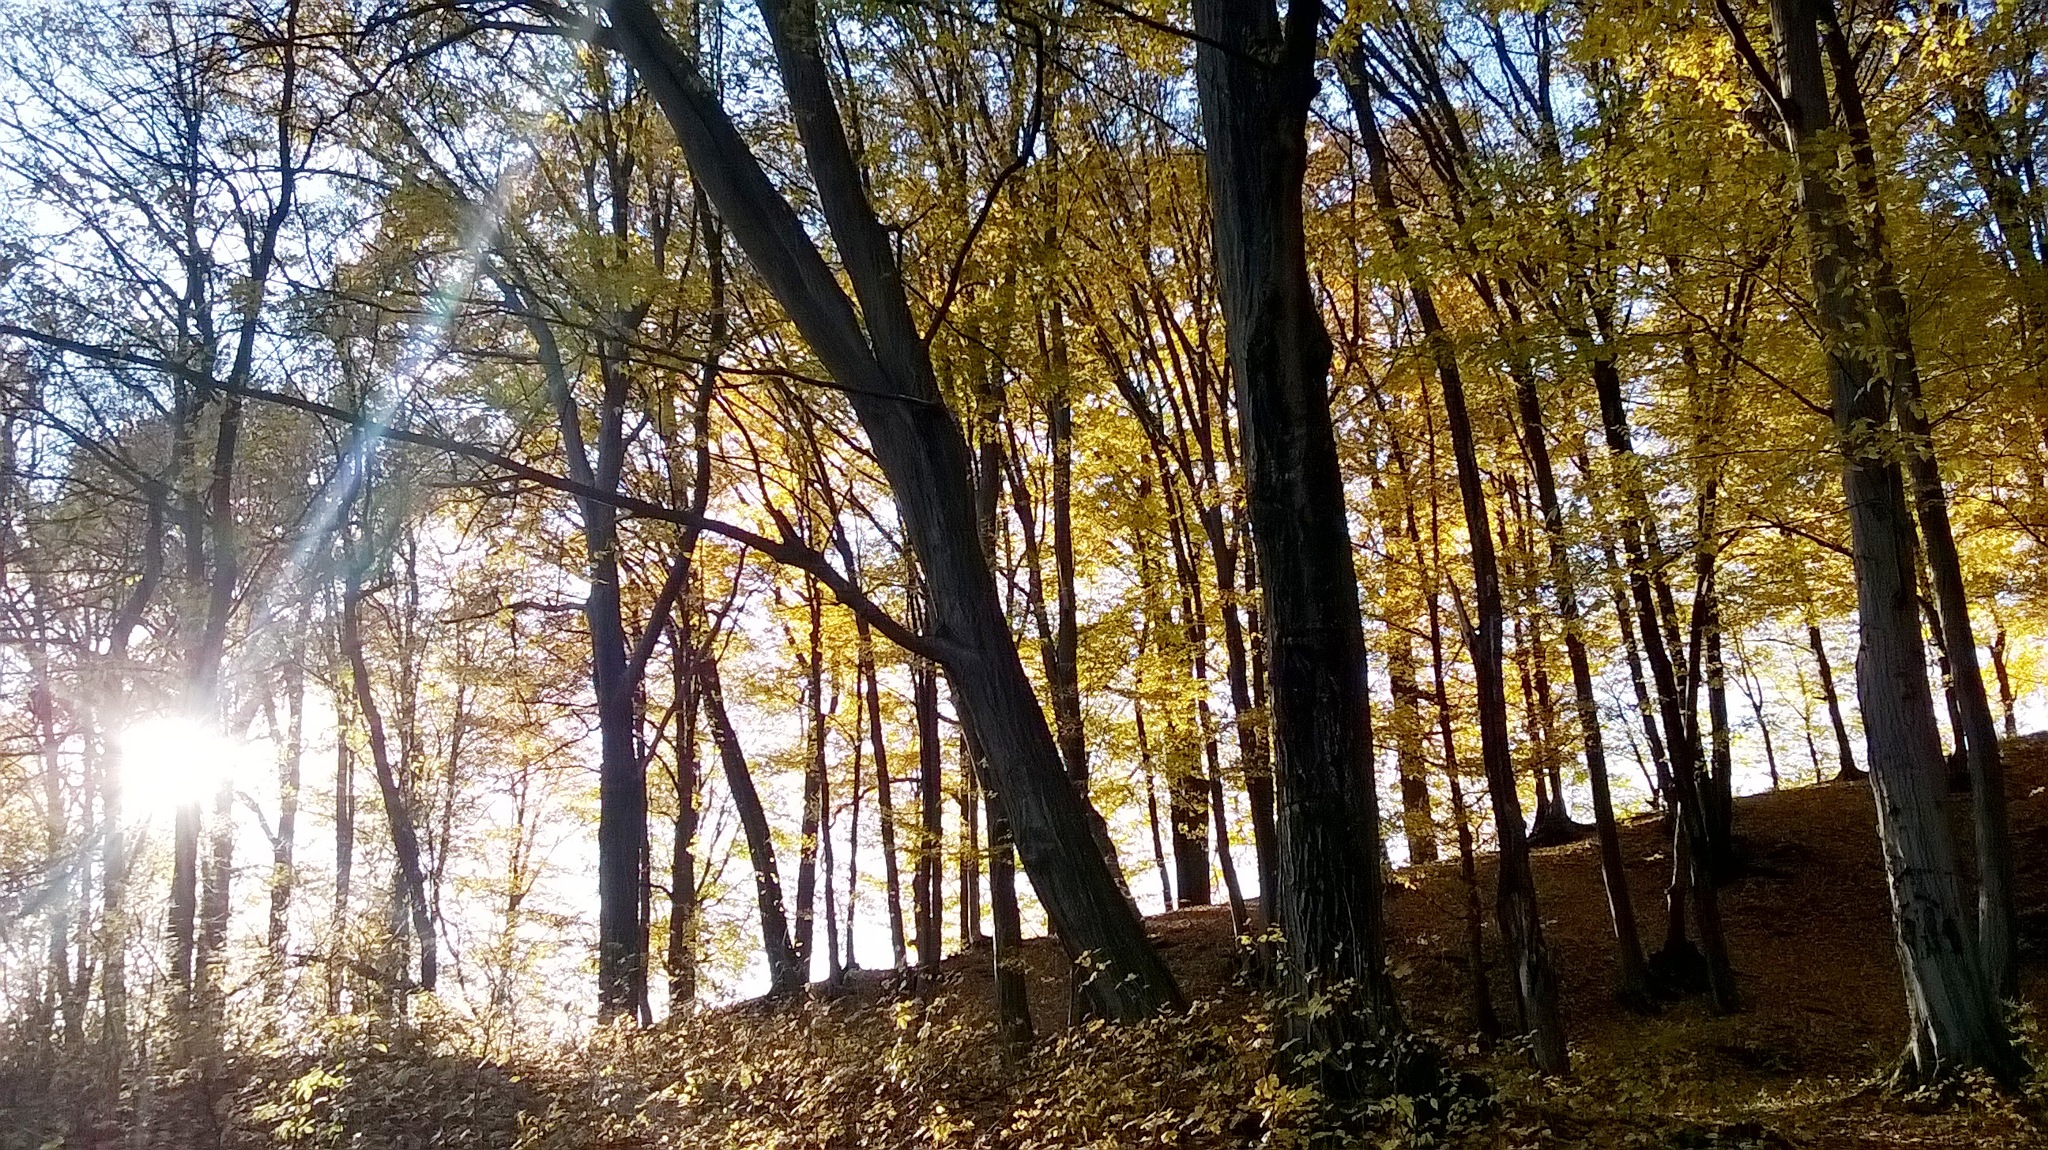 Walking in the forest by Autumn Leaves